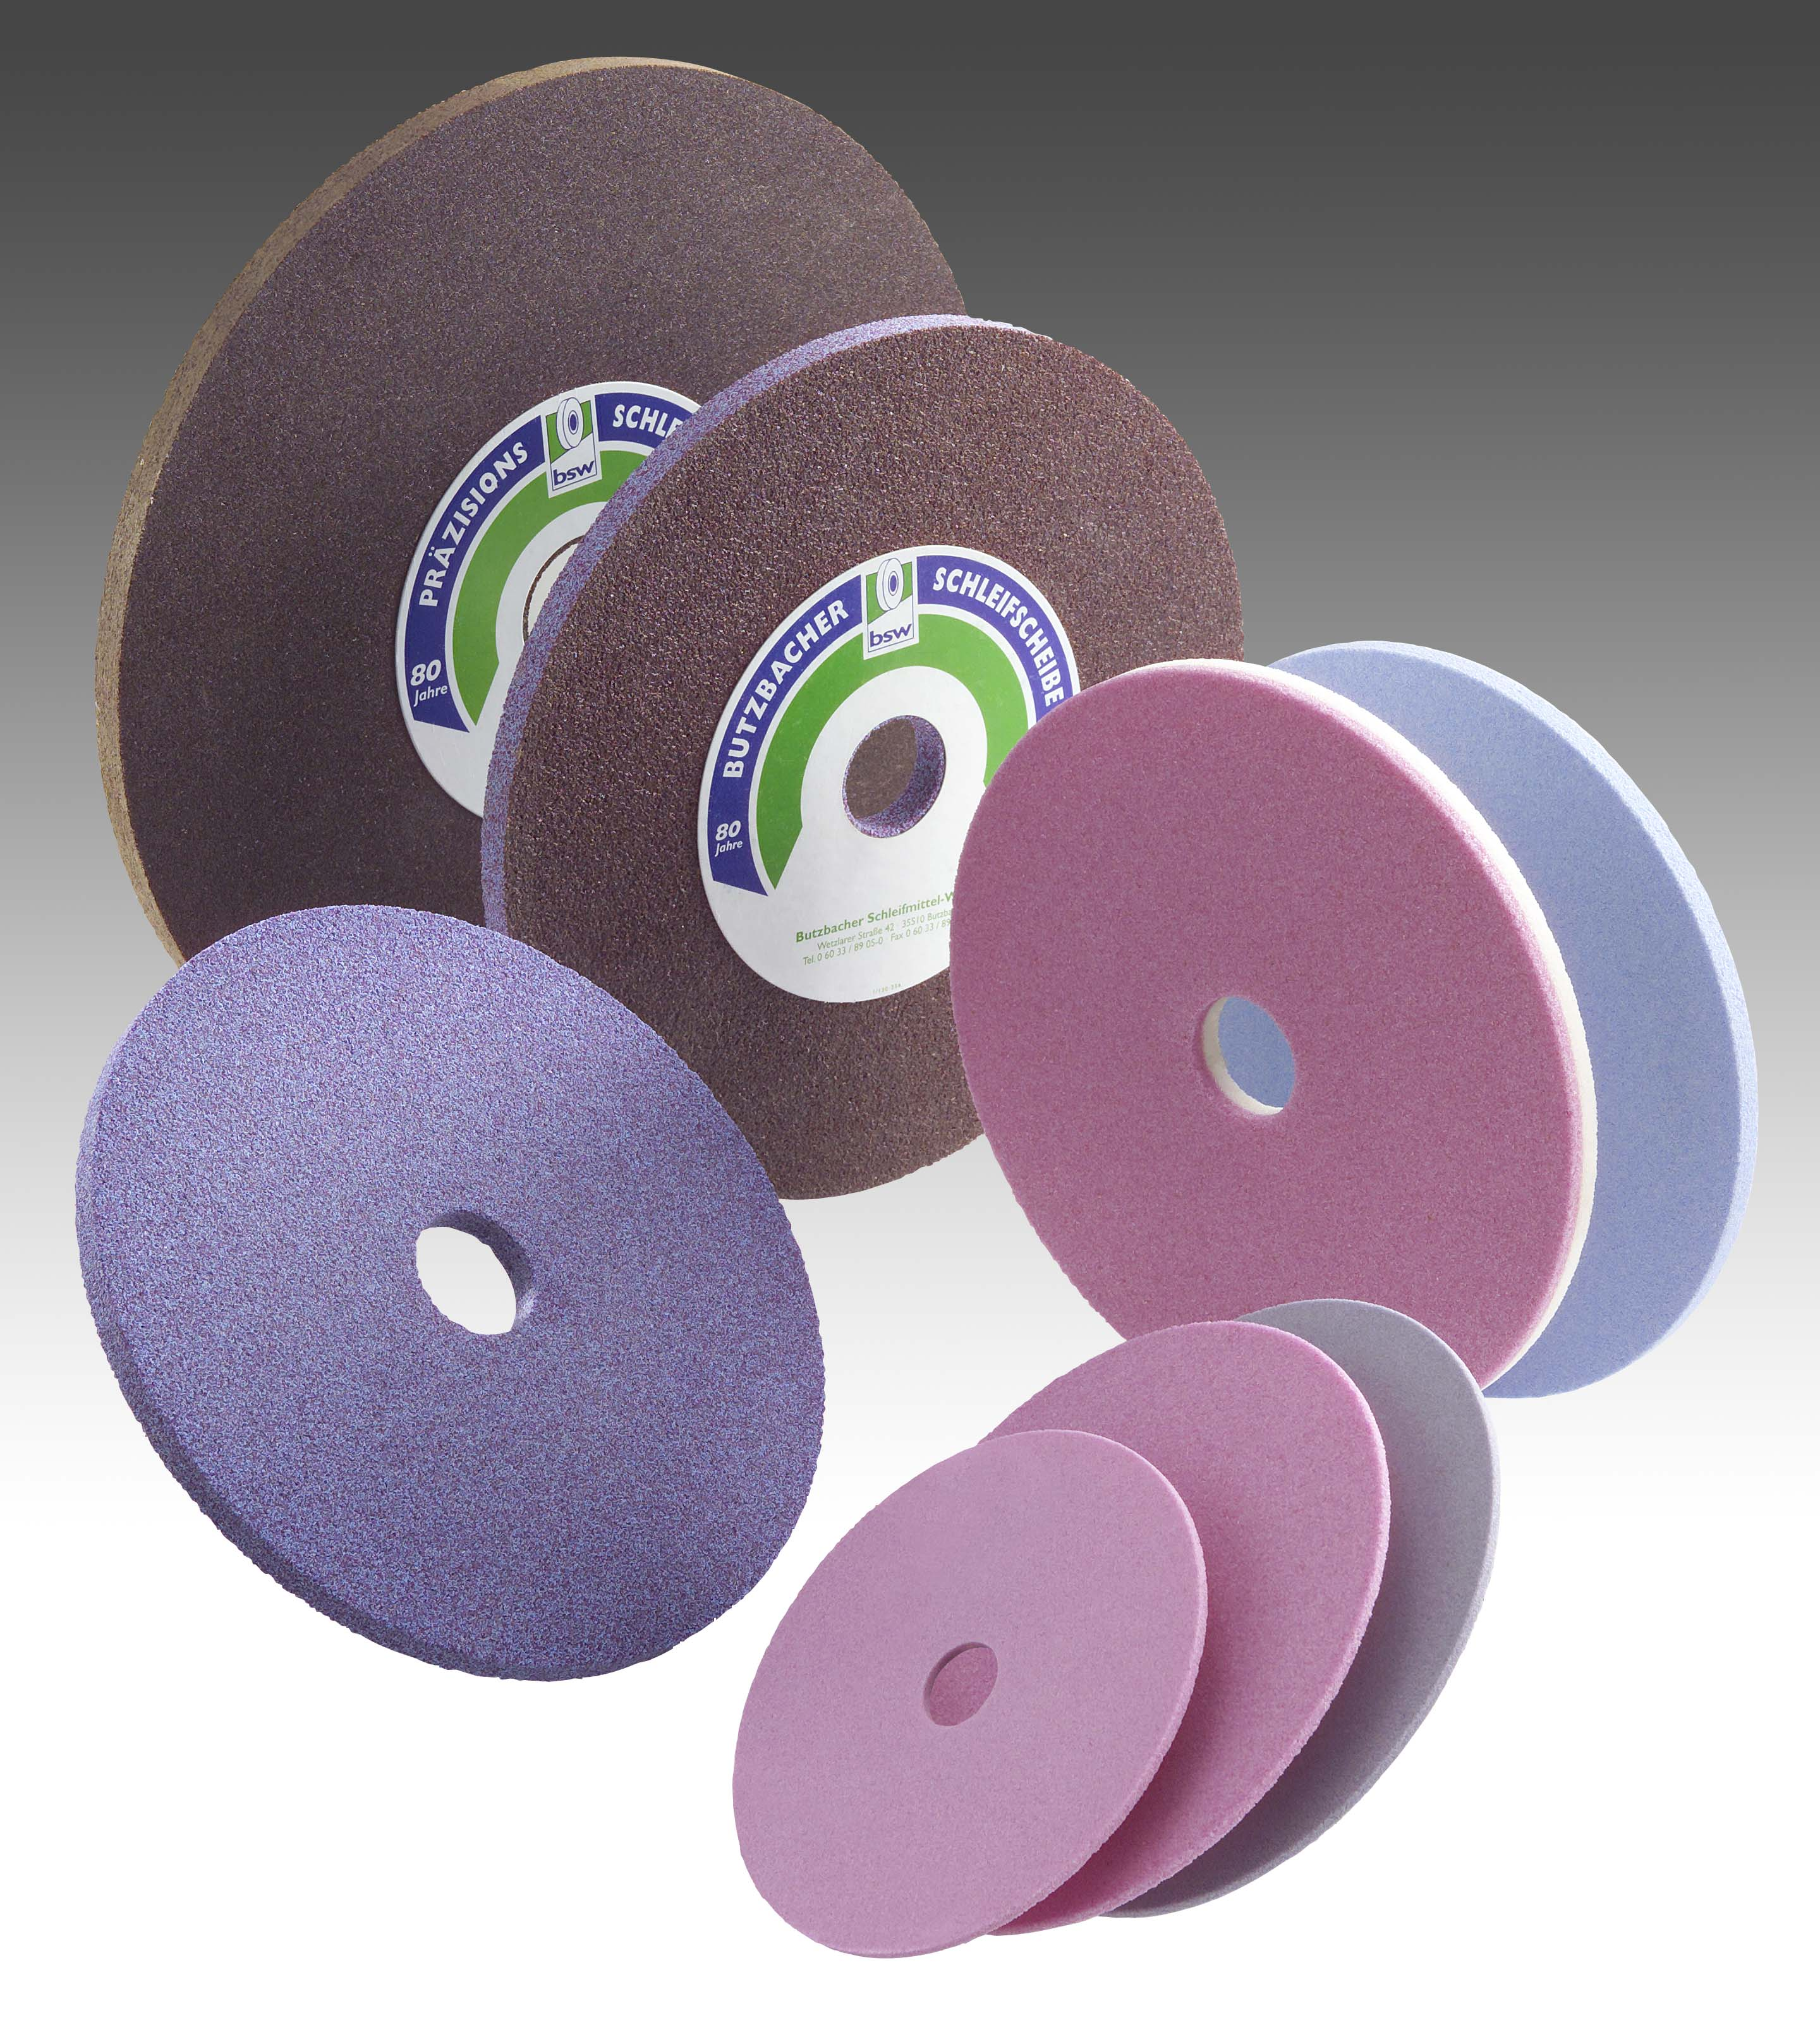 Saw grinding wheels